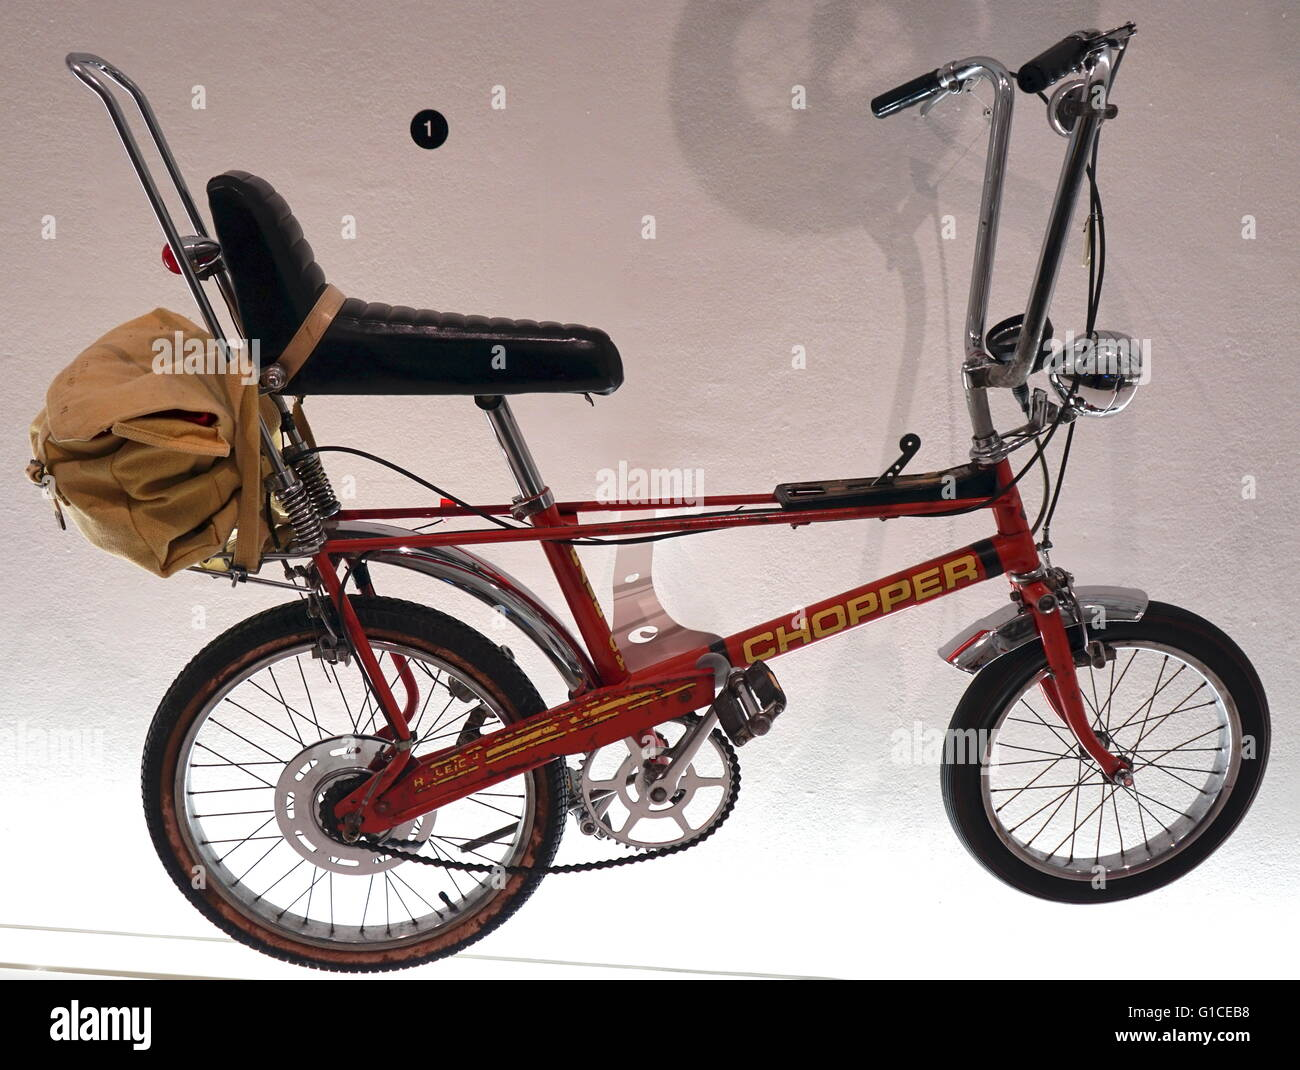 Raleigh Chopper designed by Ogle Design & Alan Oakley. Dated 1970 Stock Photo